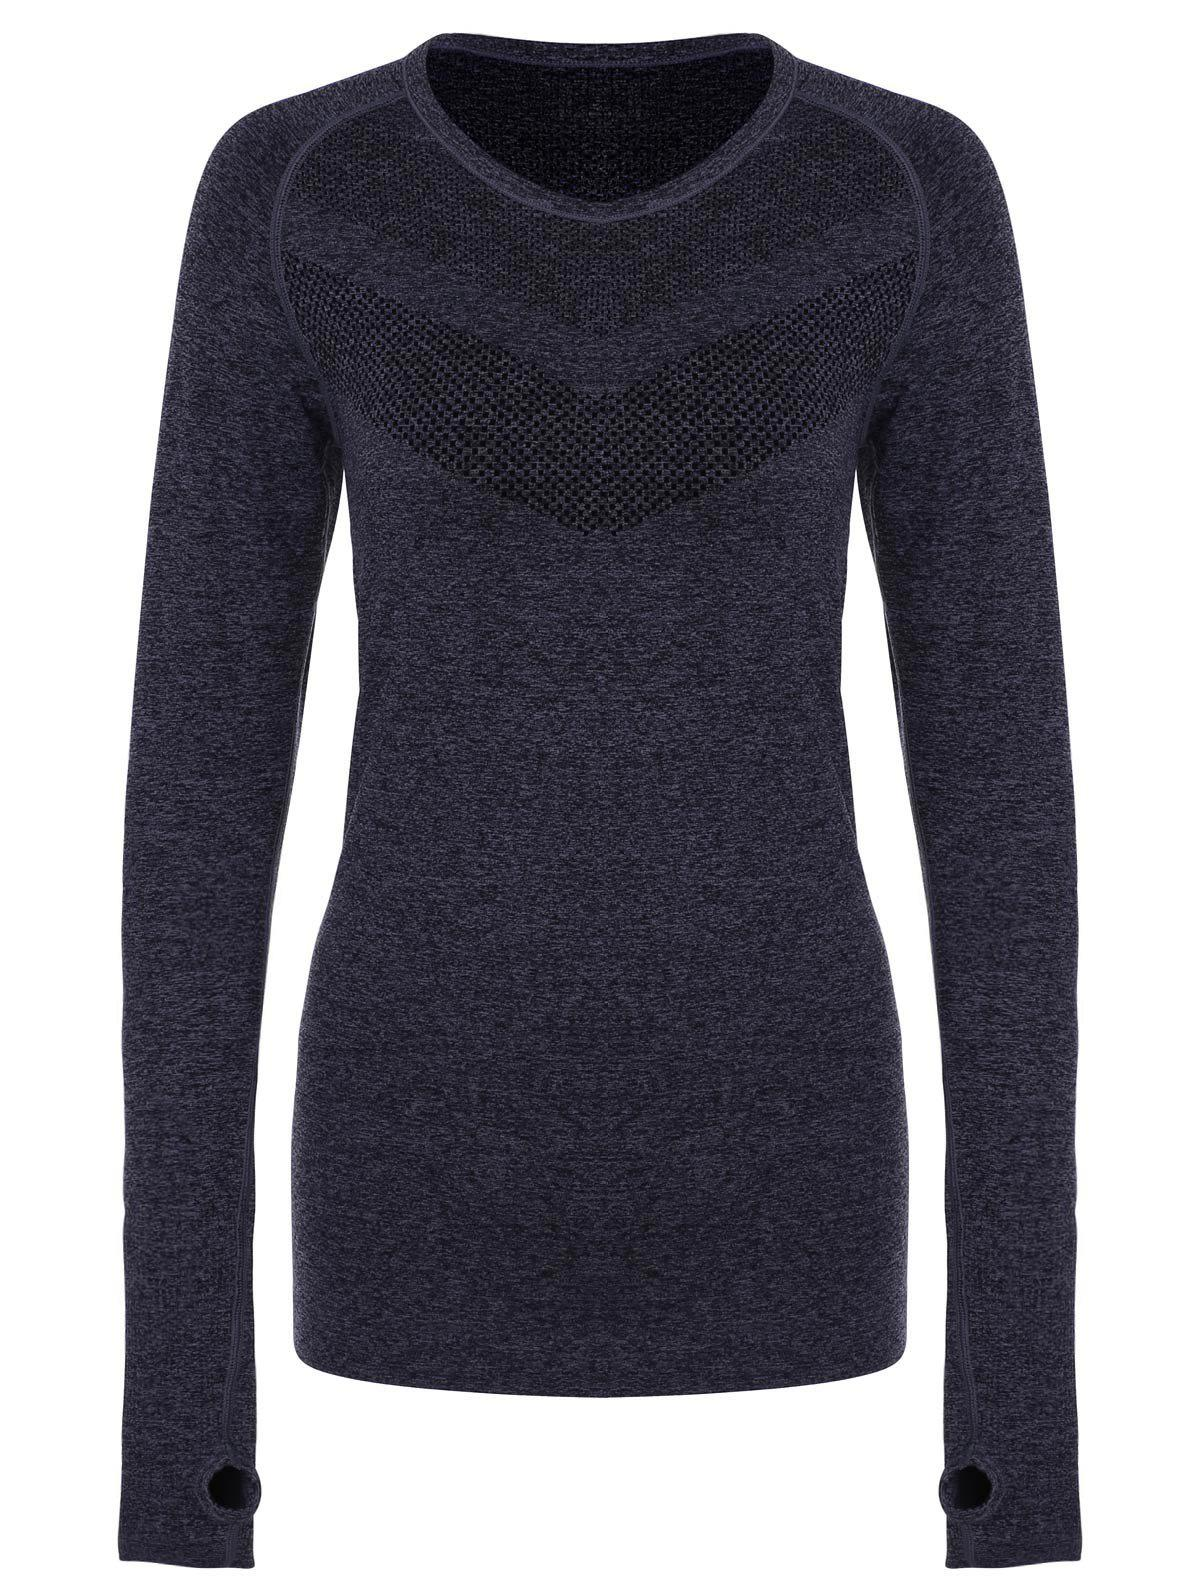 Stylish Women's Round Collar Slimming Long Sleeve Gym Top - BLACK GREY S